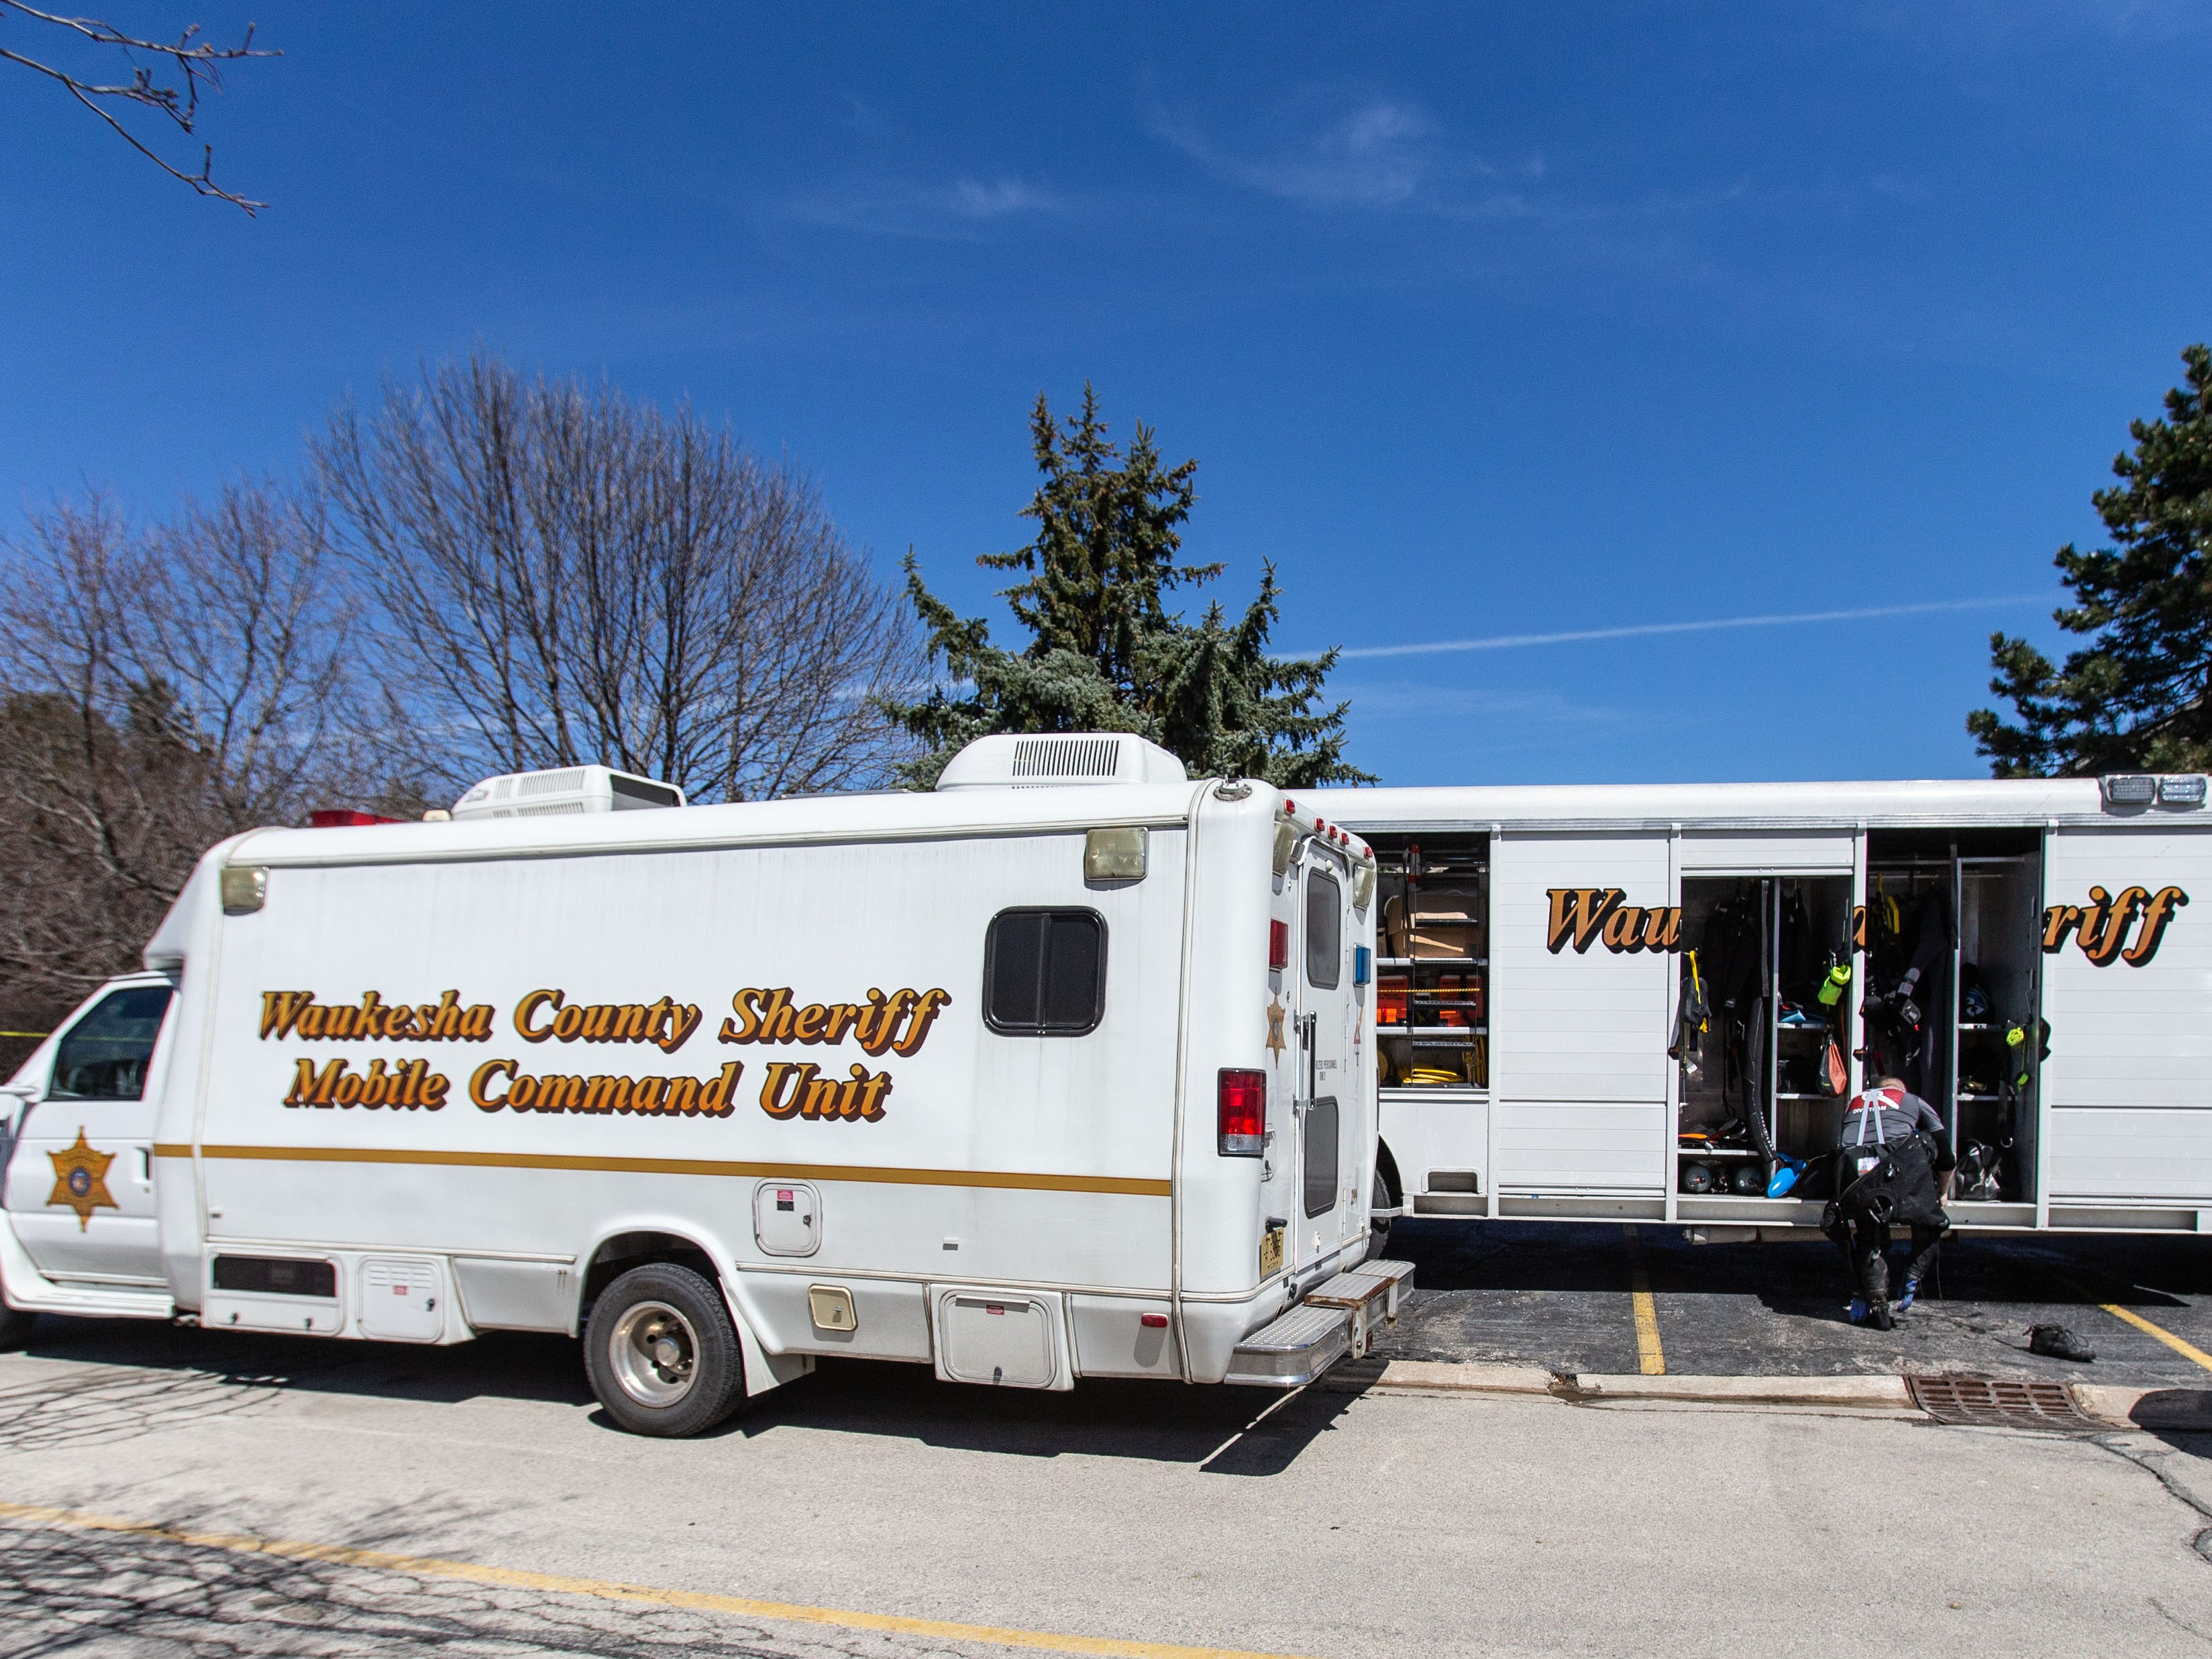 The Waukesha County Sheriff's Mobile Command Unit and Dive Team assist the Town of Brookfield Police as they search a drained pond at the Brookfield Lake Condominiums on Monday, April 15, 2019. The search is related to a November homicide.